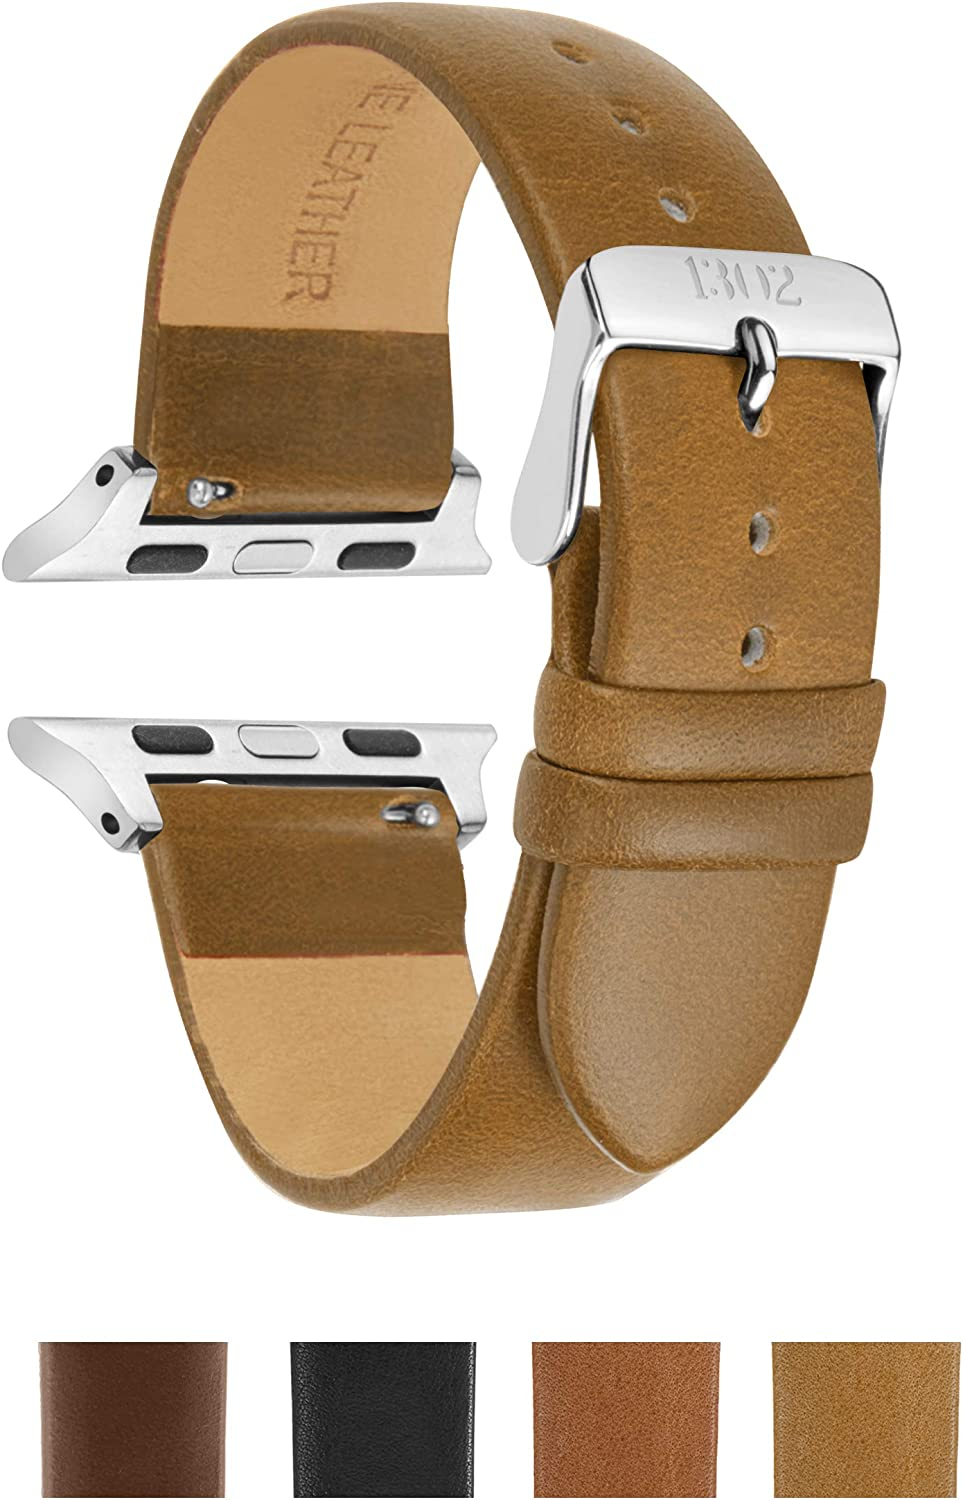 Compatible with Silver Apple Watch Band 38mm - Leather Apple Watch Band 38mm - Leather Apple Watch Band 42mm Men - Leather iwatch Band 38mm - 42mm Apple Watch Band (Beige Vegetable Tanned, 38mm/40mm)